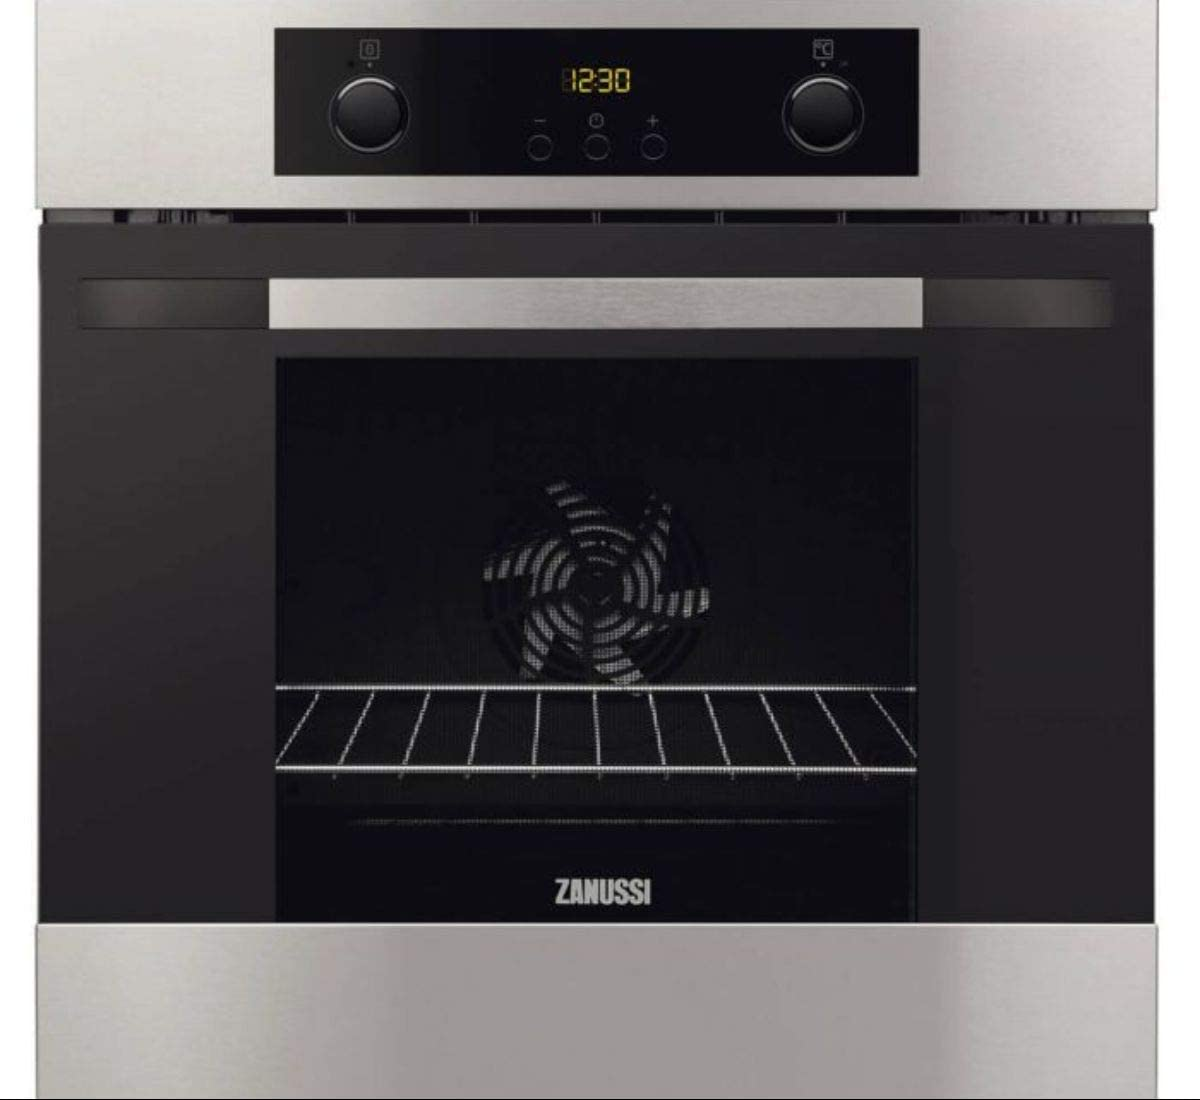 Zanussi Electric Built-in Single Oven Stainless Steel, Multi-Functional Steam Oven With Anti-fingerprint Coating, ZOA35502XD - 1 Year Warranty